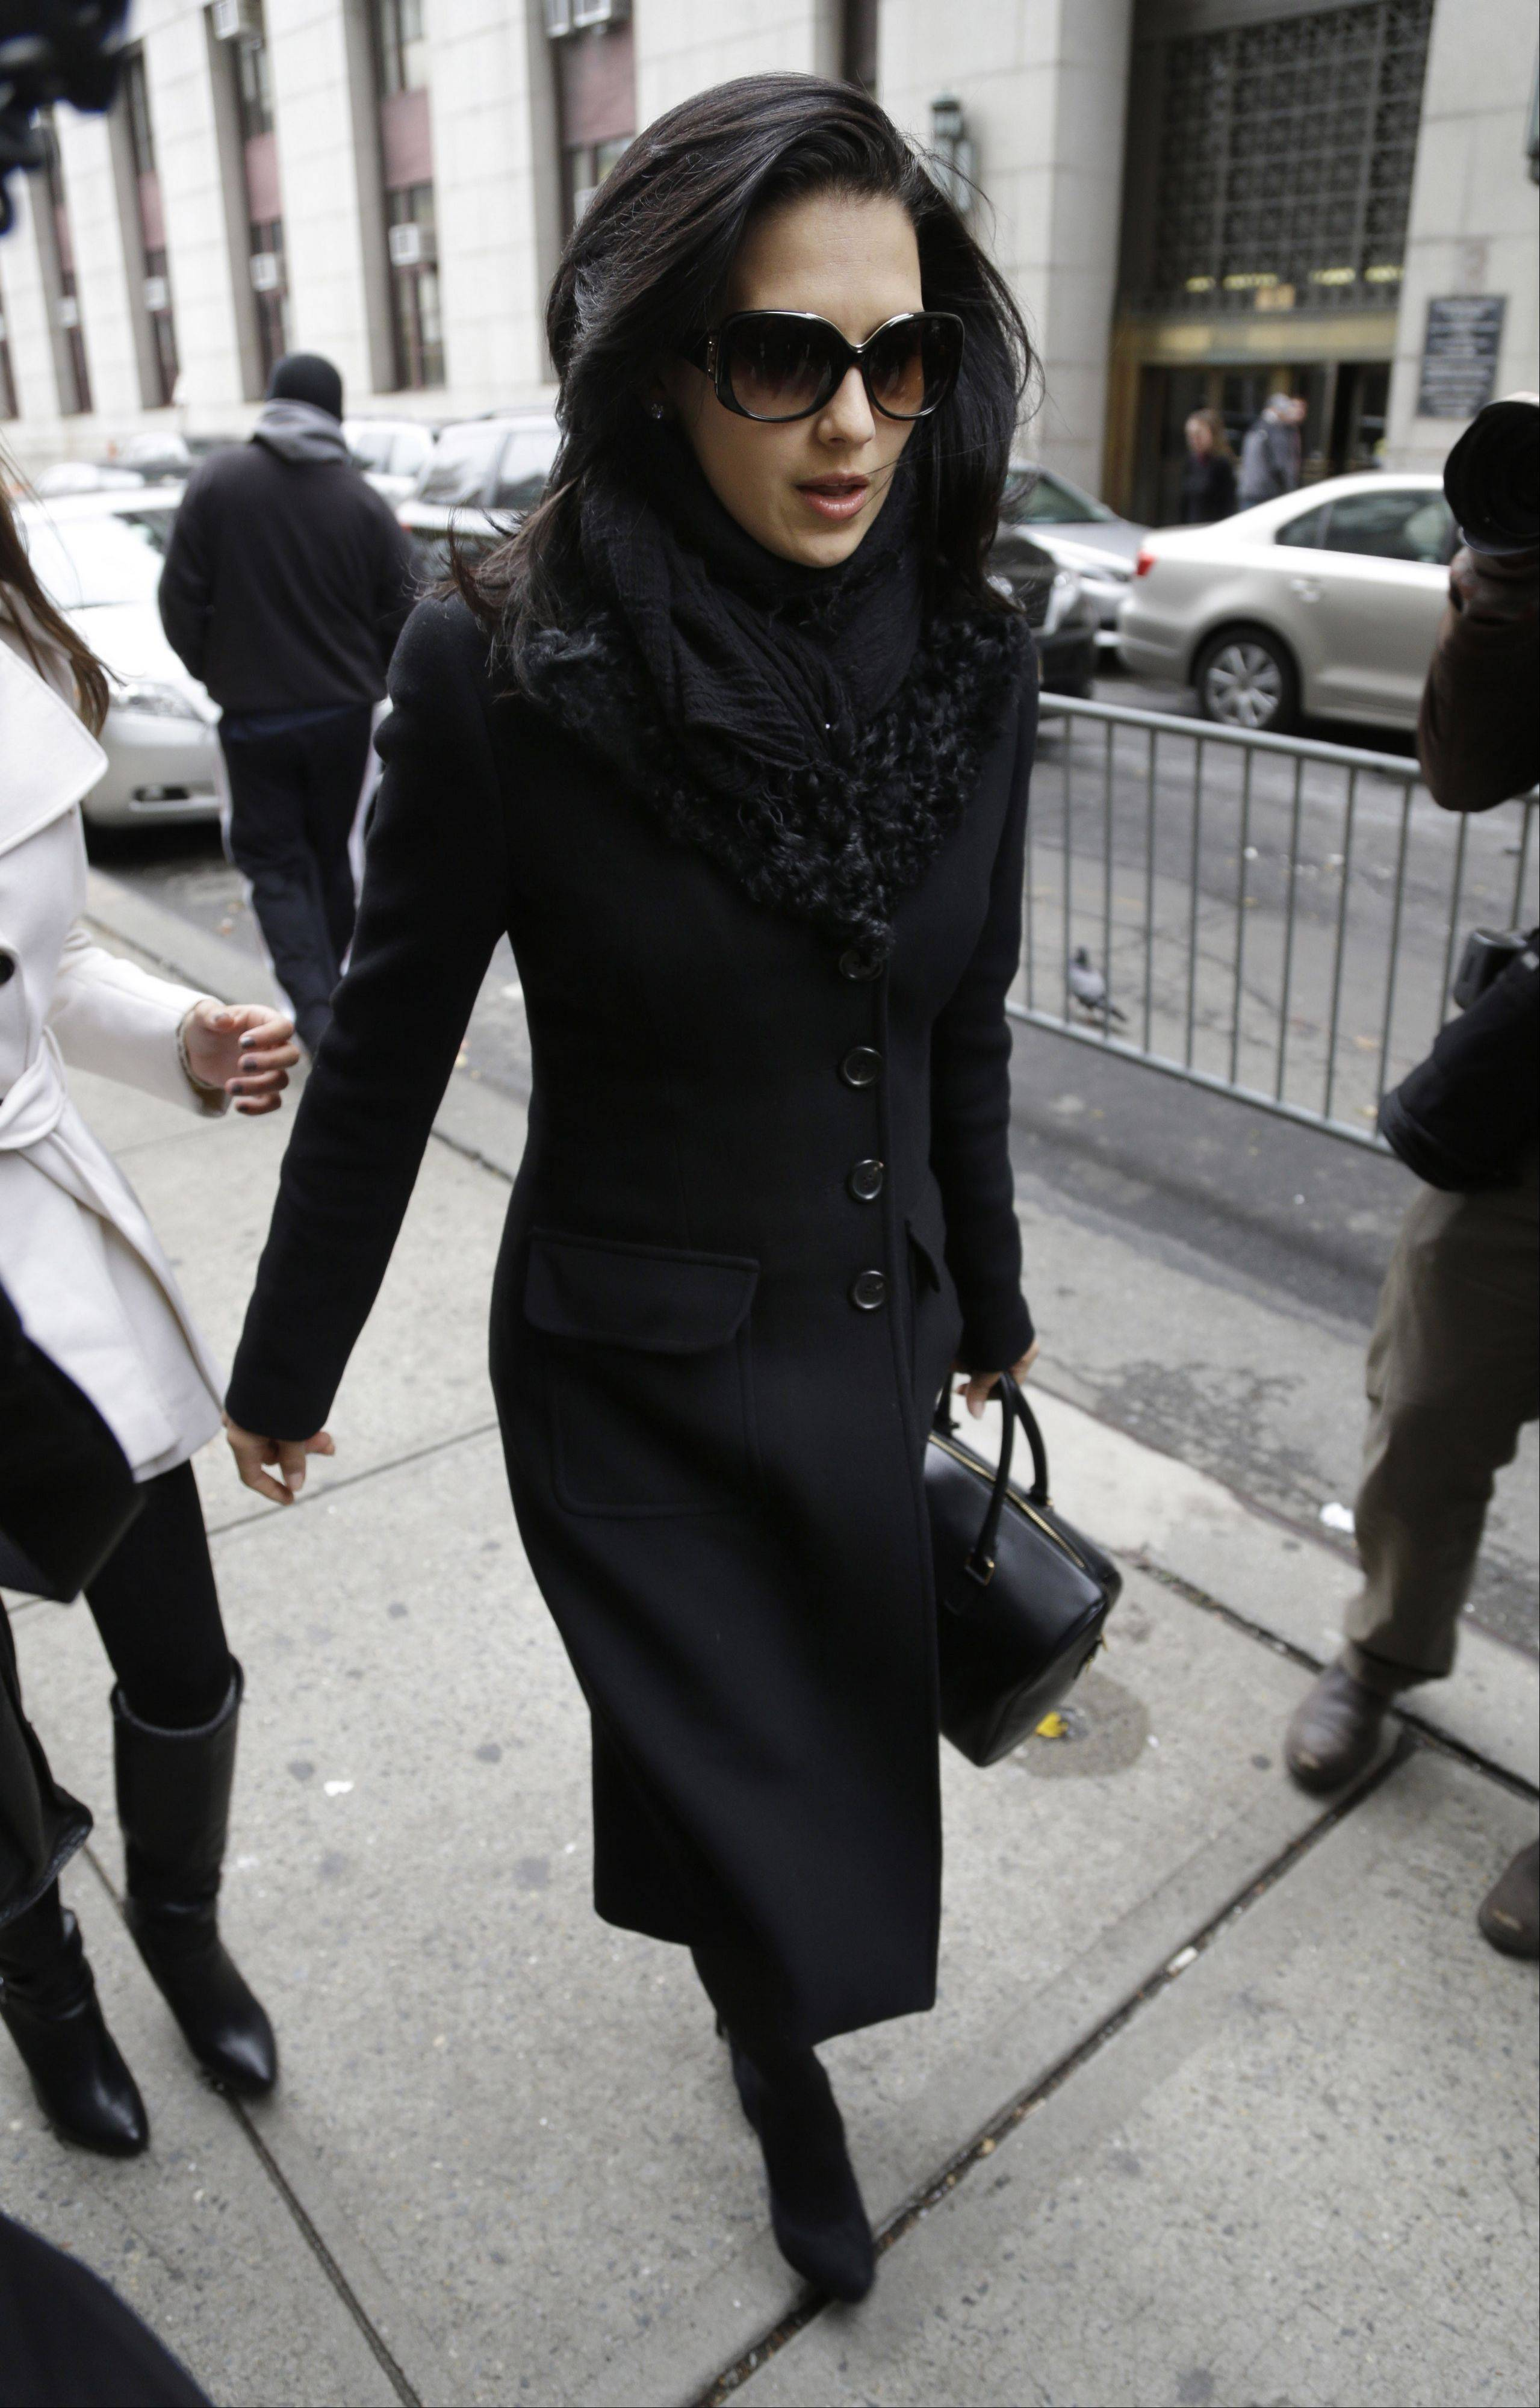 Hilaria Baldwin, wife of actor Alec Baldwin, arrives to court in New York.